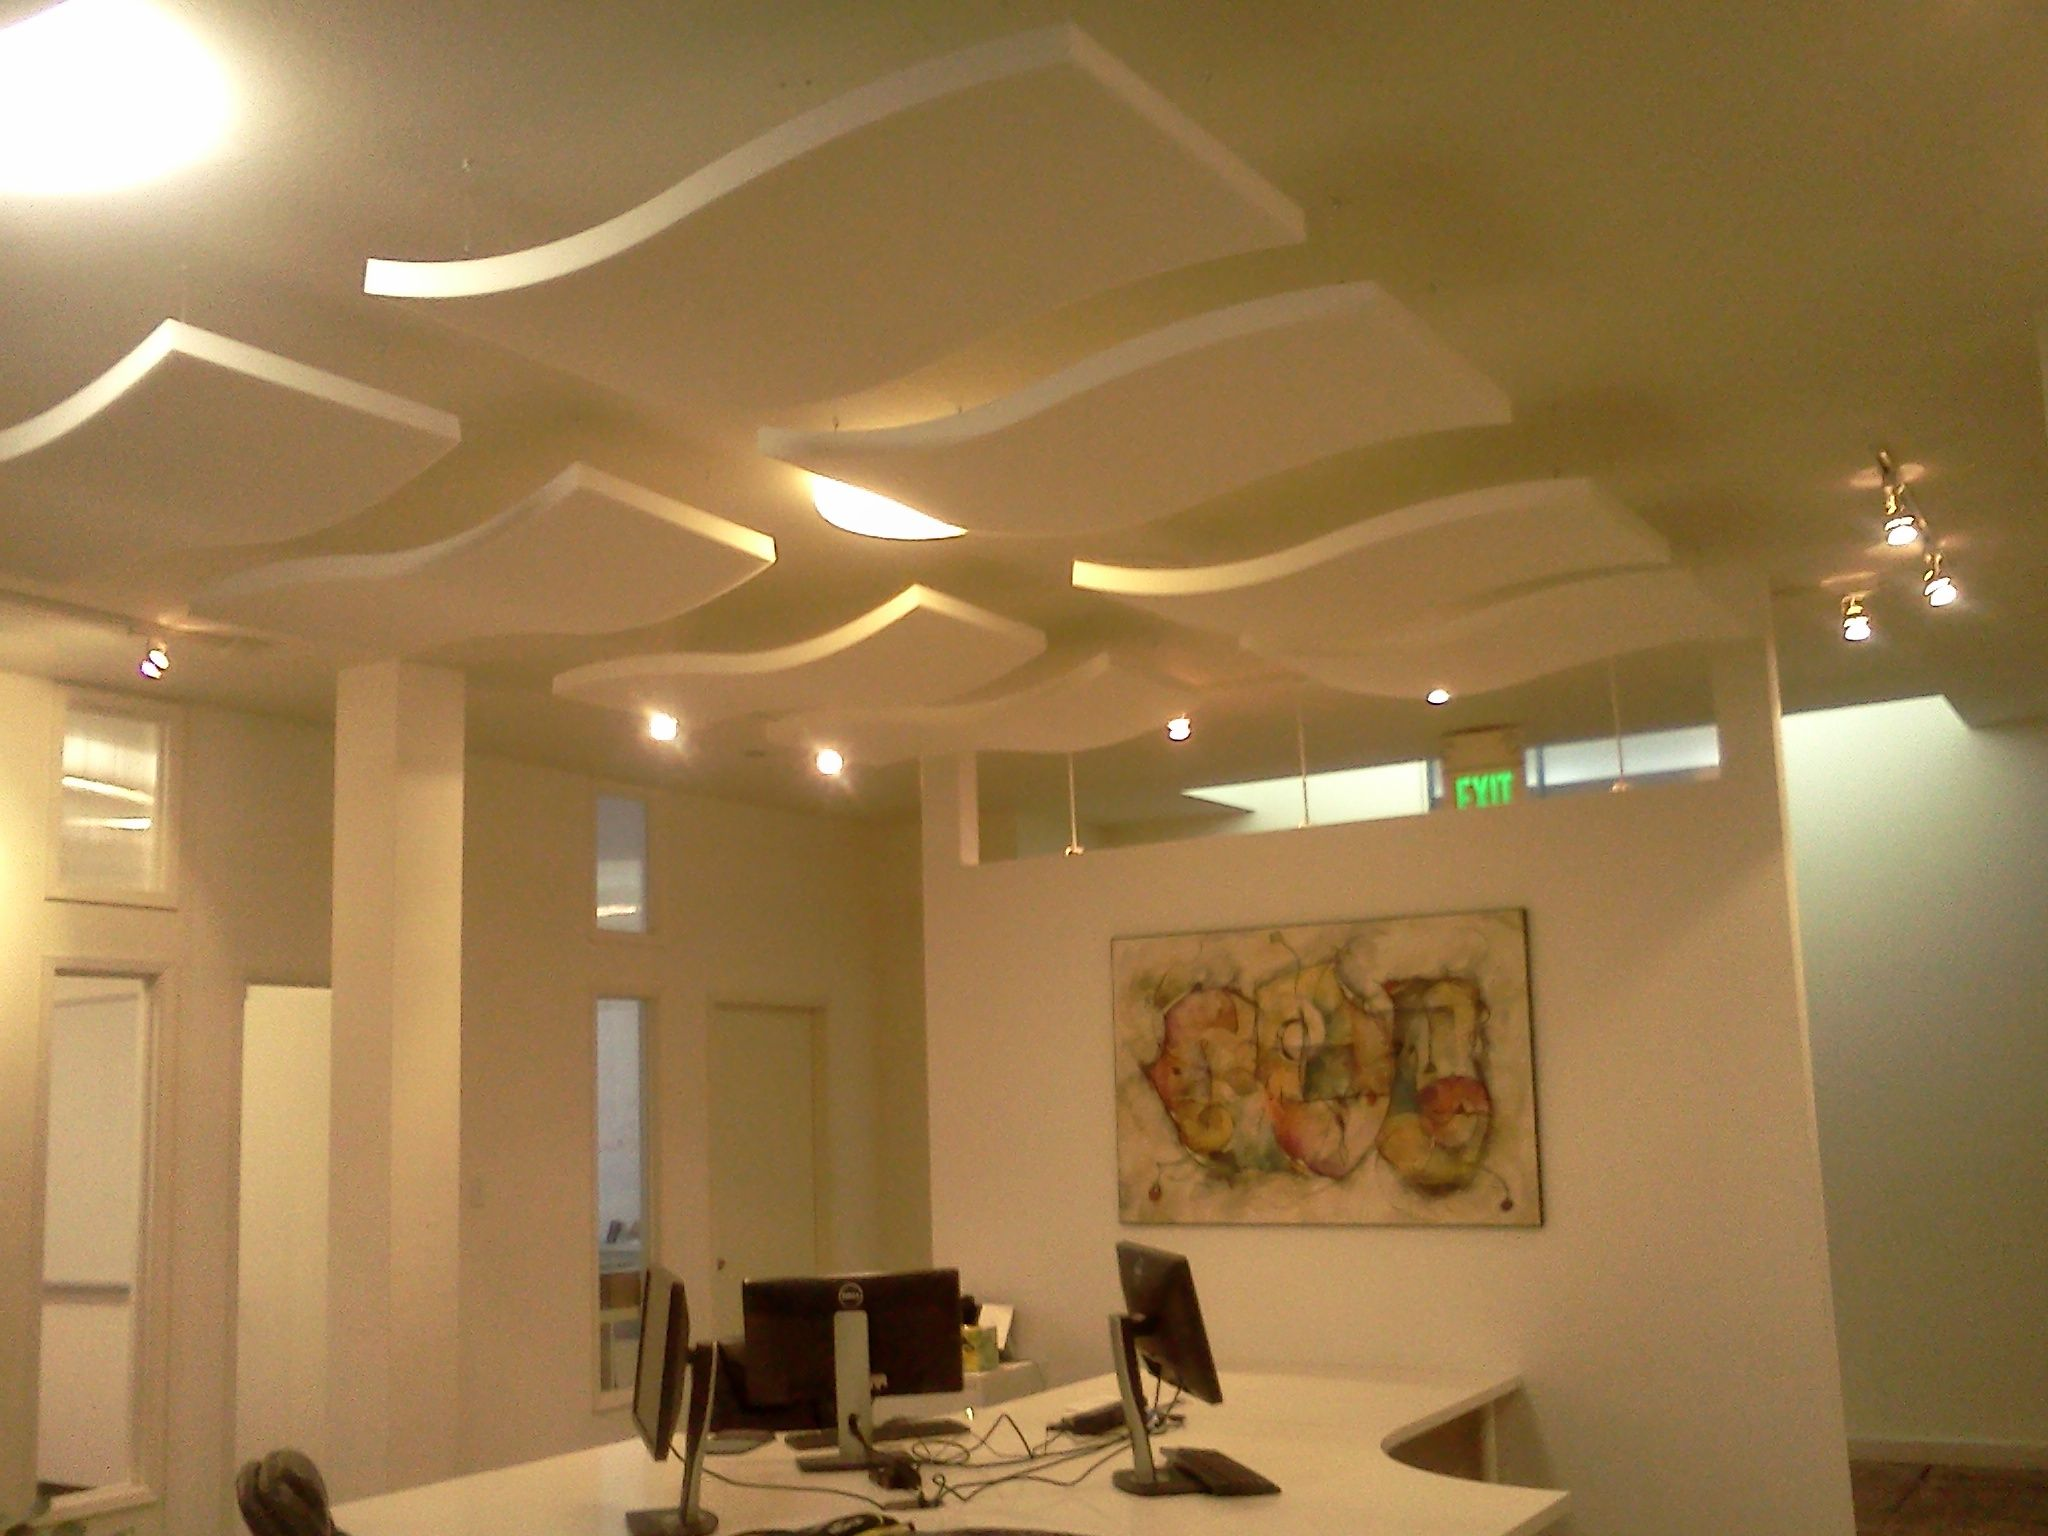 Acoustic panels hanging from ceiling | Office inspiration ...